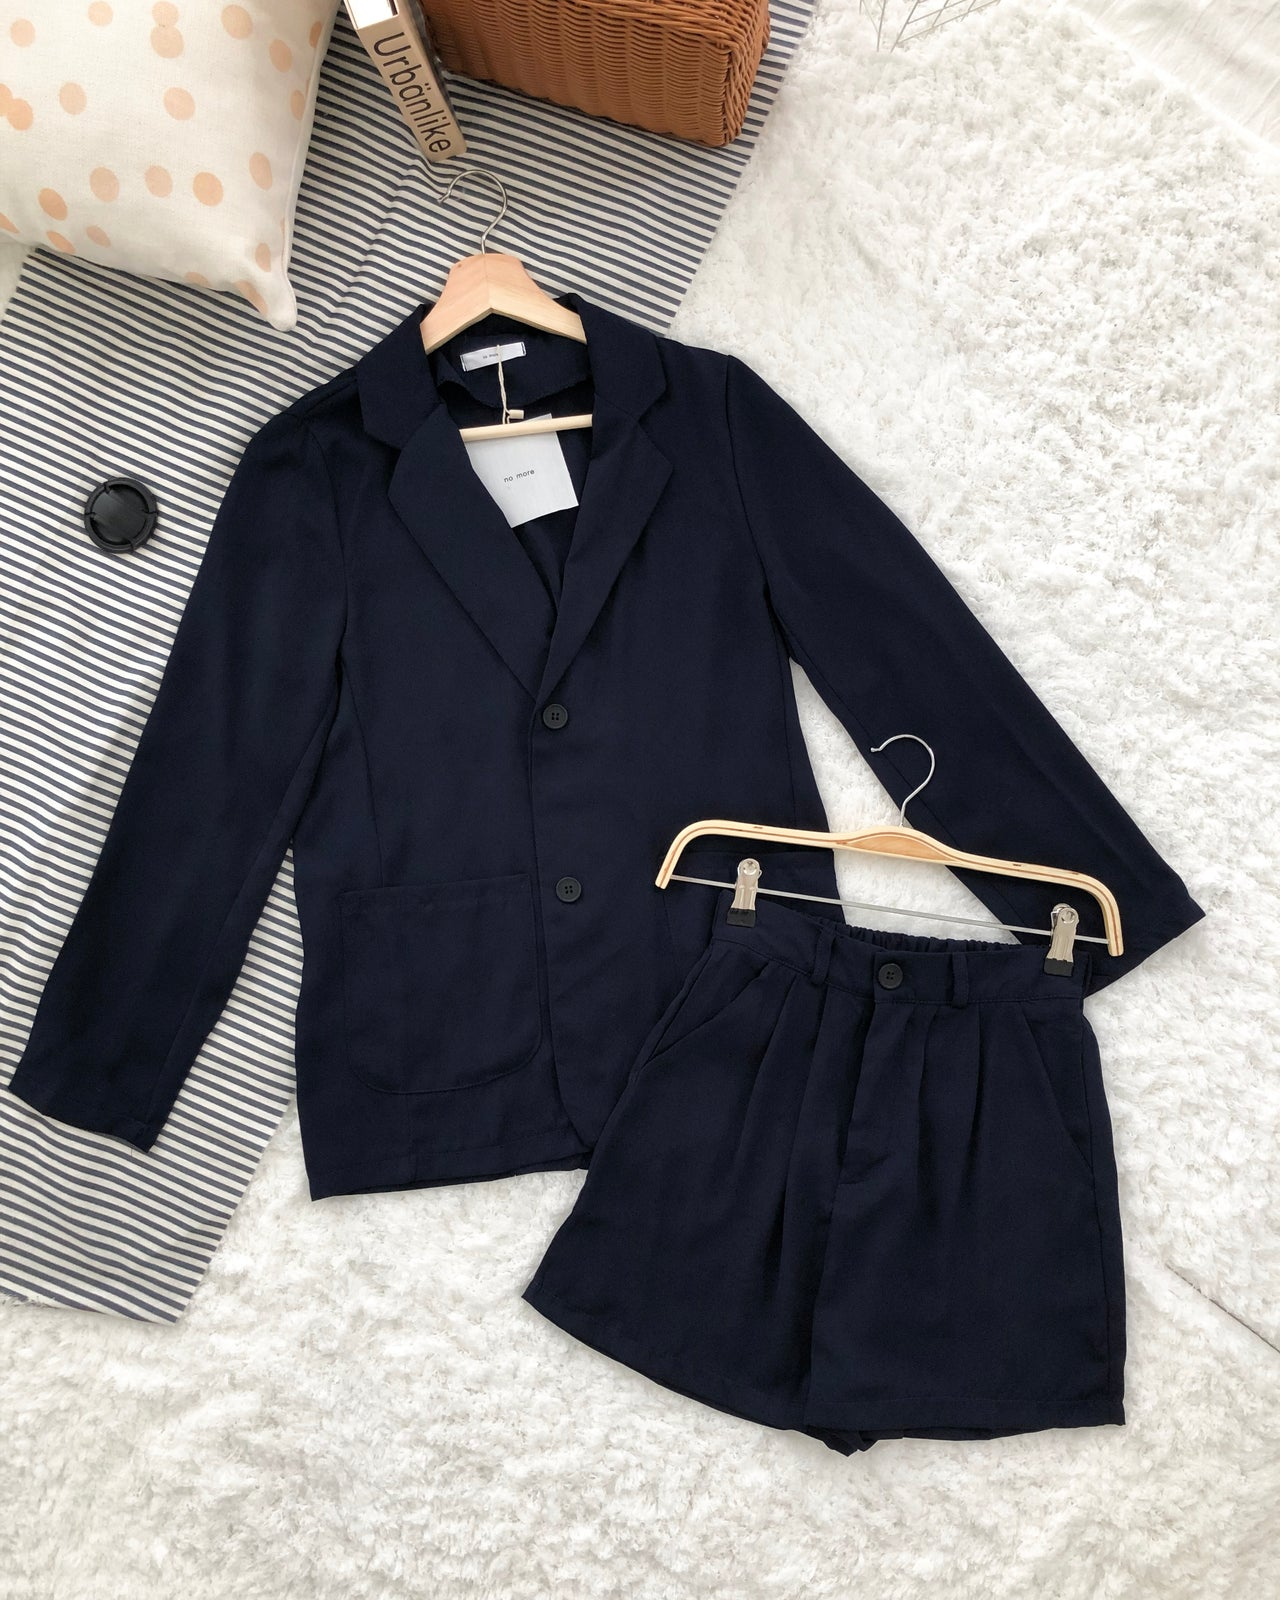 QUINCY Suit Set - LovelyMadness Clothing Online Fashion Malaysia